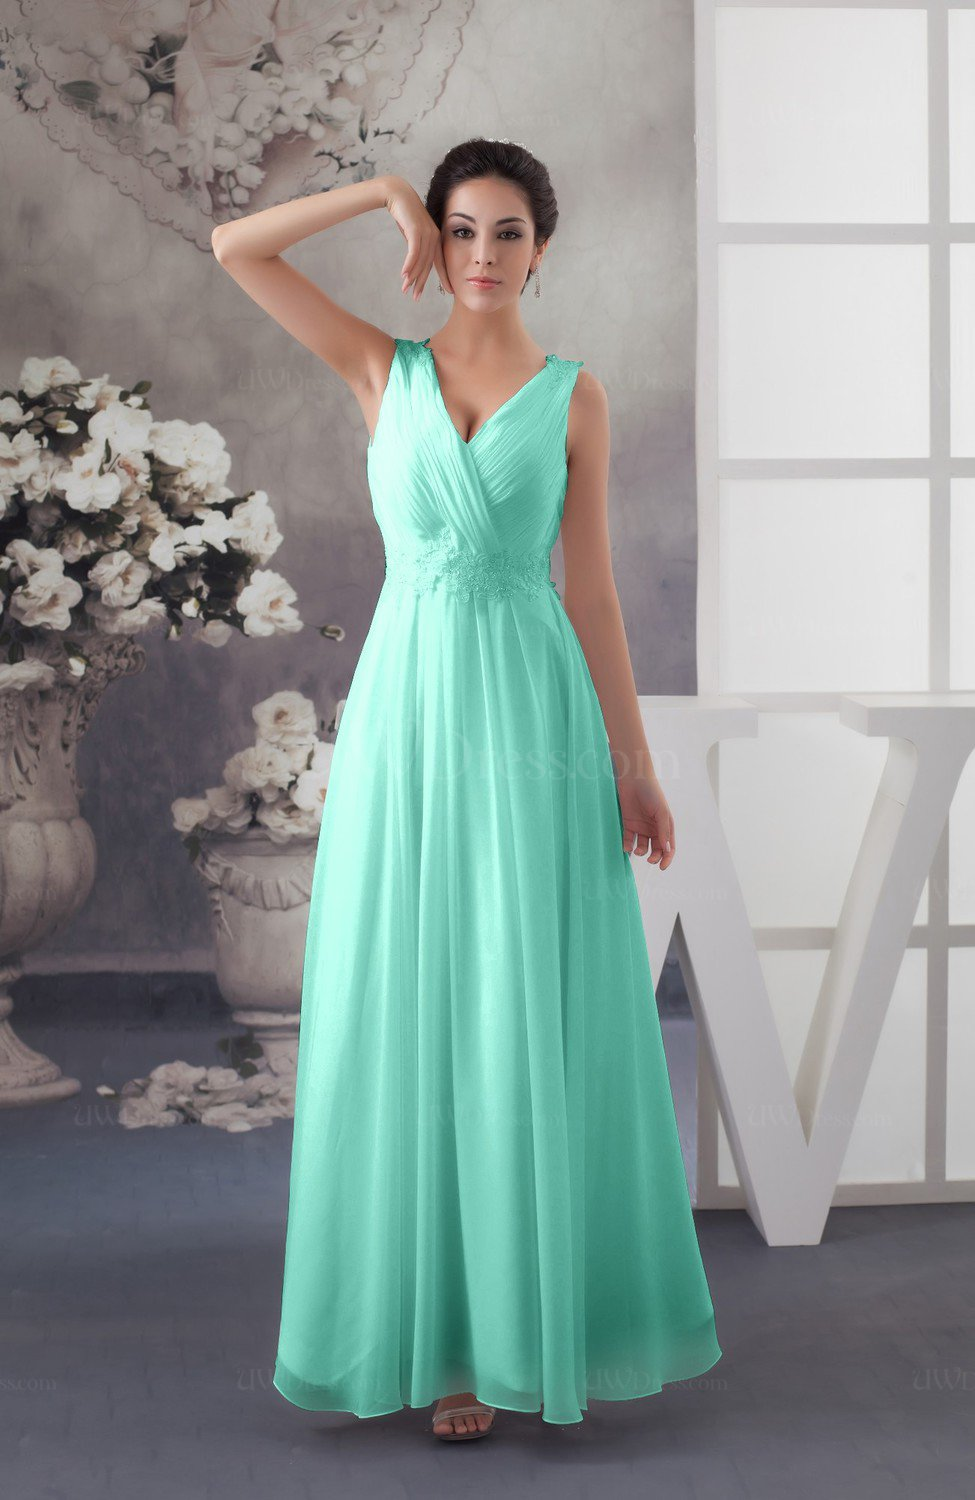 191023bfaf5 Mint Green Chiffon Bridesmaid Dress Affordable Sexy Western Allure  Sleeveless Amazing (Style D42268)